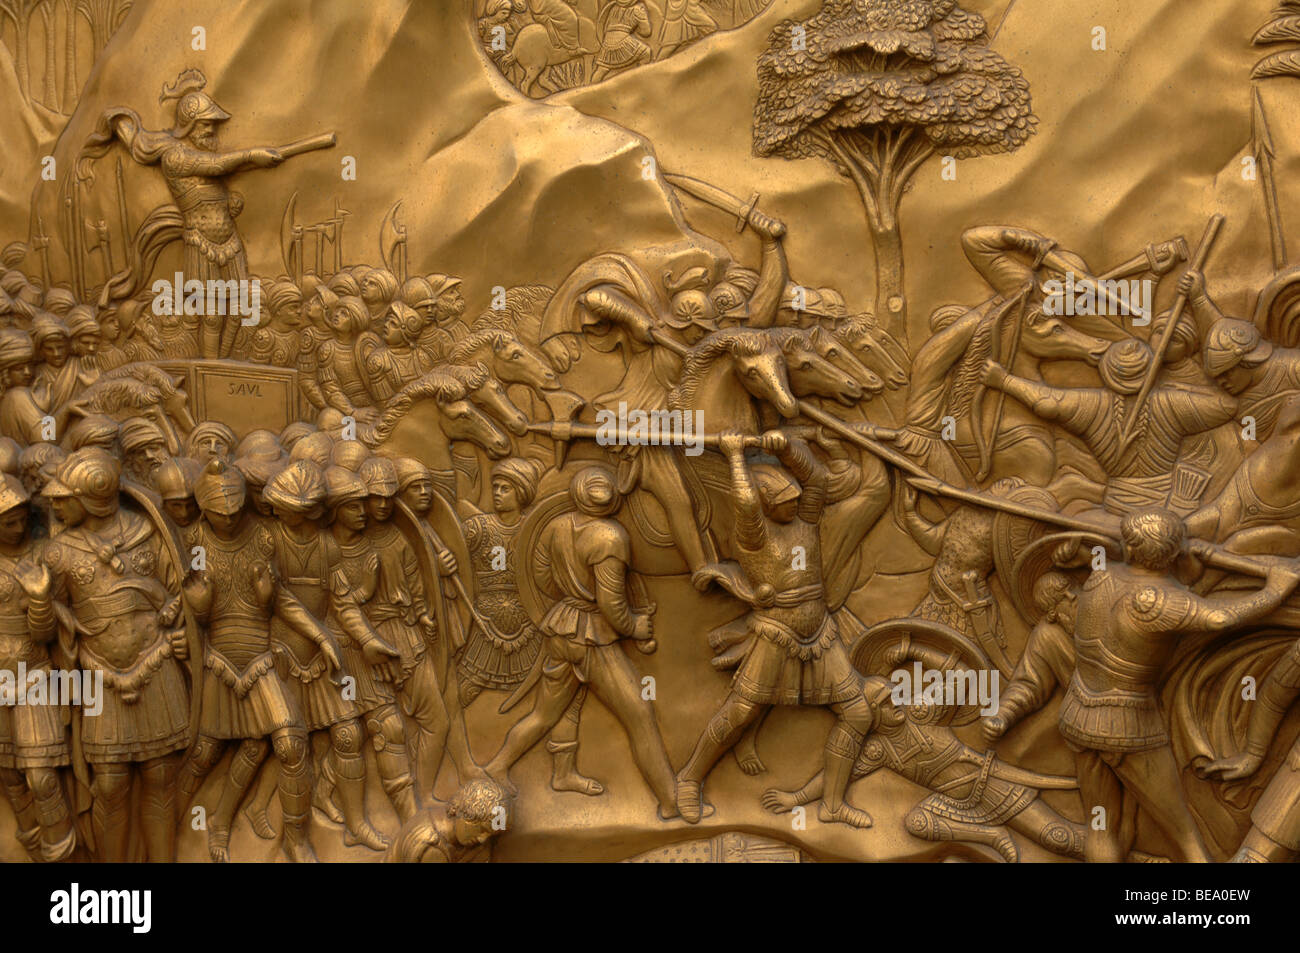 Bronze Doors with Relief Sculptures by Lorenzo Ghiberti Florence Baptistry Piazza del Duomo Florence Italy. & Bronze Doors with Relief Sculptures by Lorenzo Ghiberti Florence ... Pezcame.Com